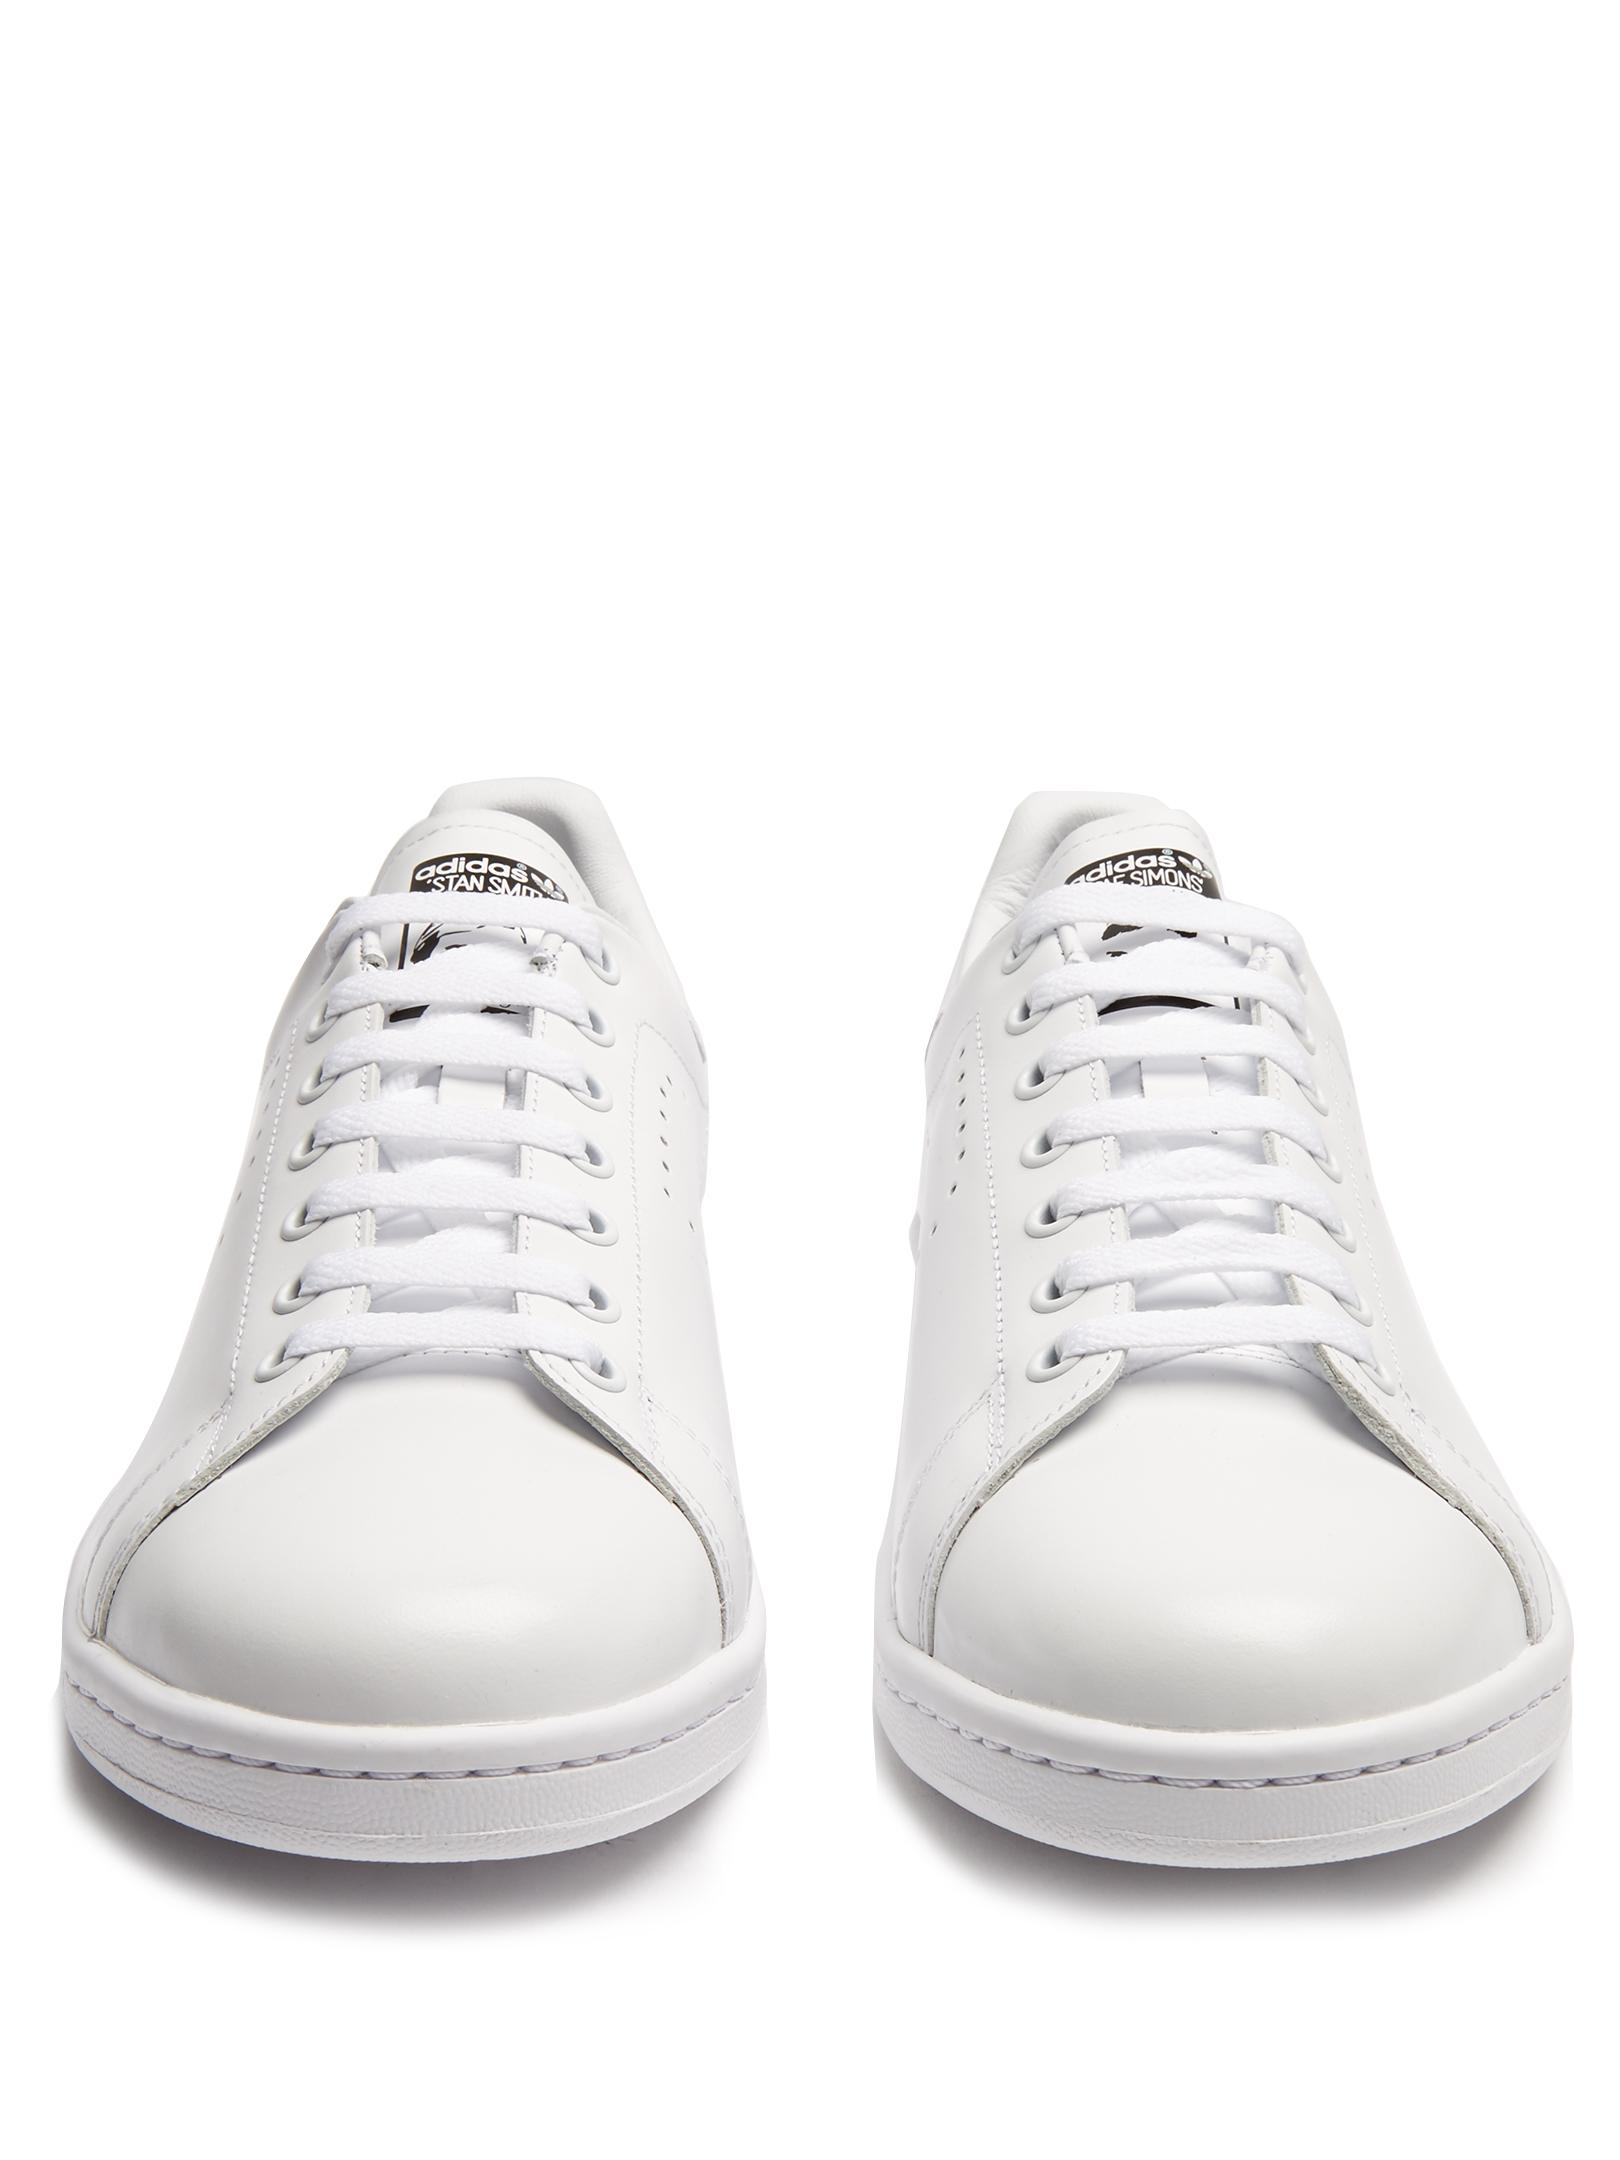 adidas By Raf Simons Stan Smith Low-top Leather Trainers in White for Men